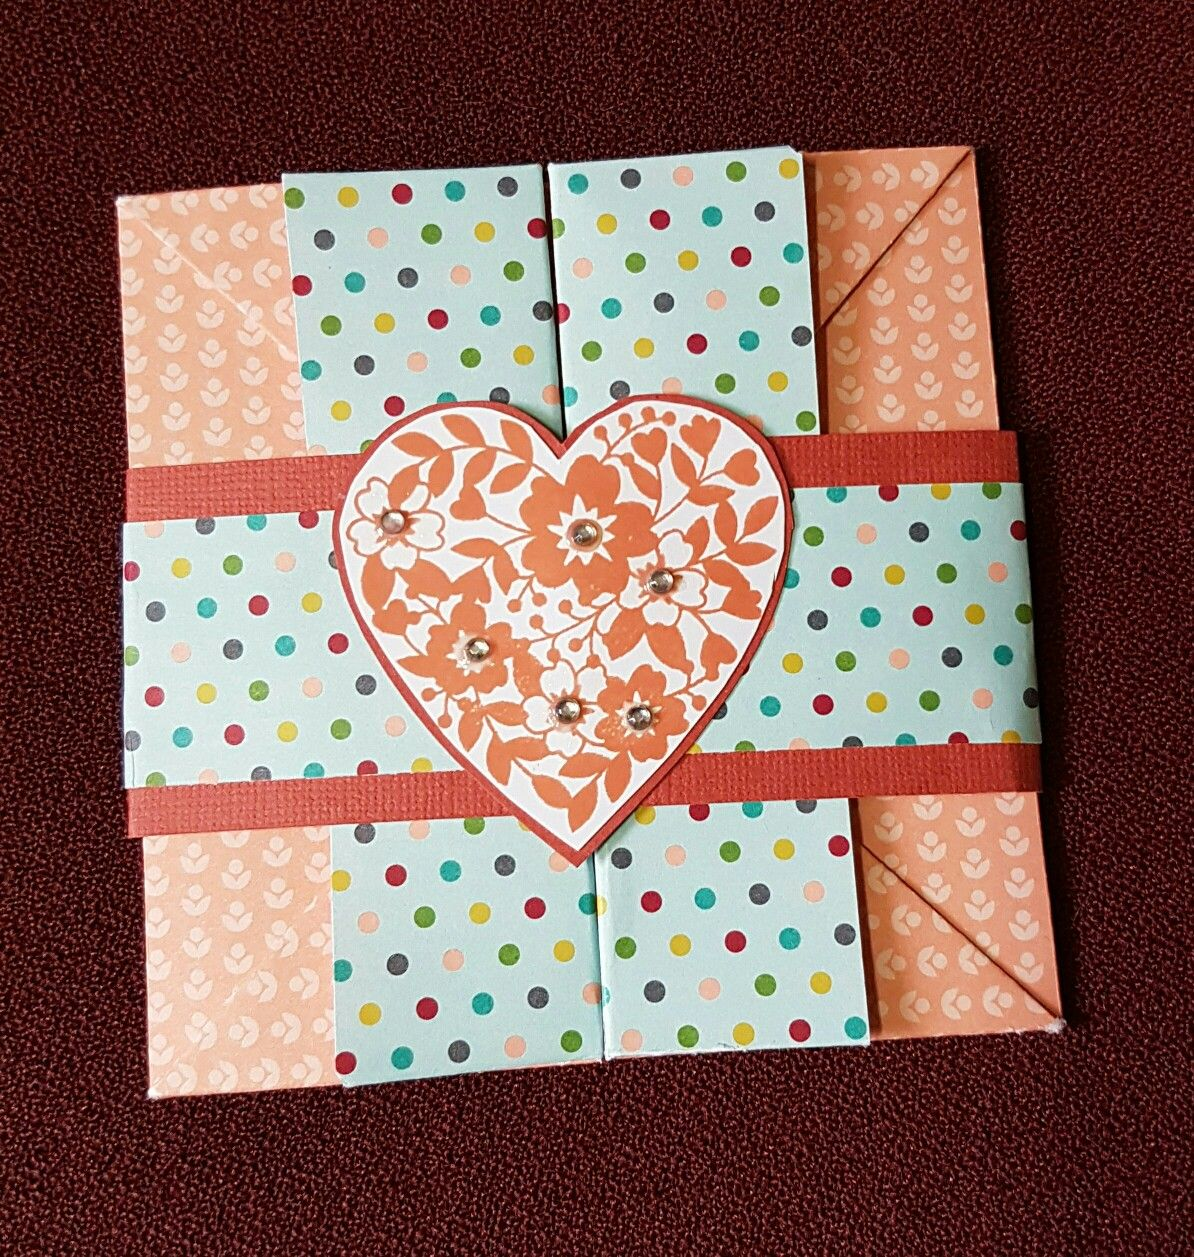 Closed Folded box  card  using  Stampinup products